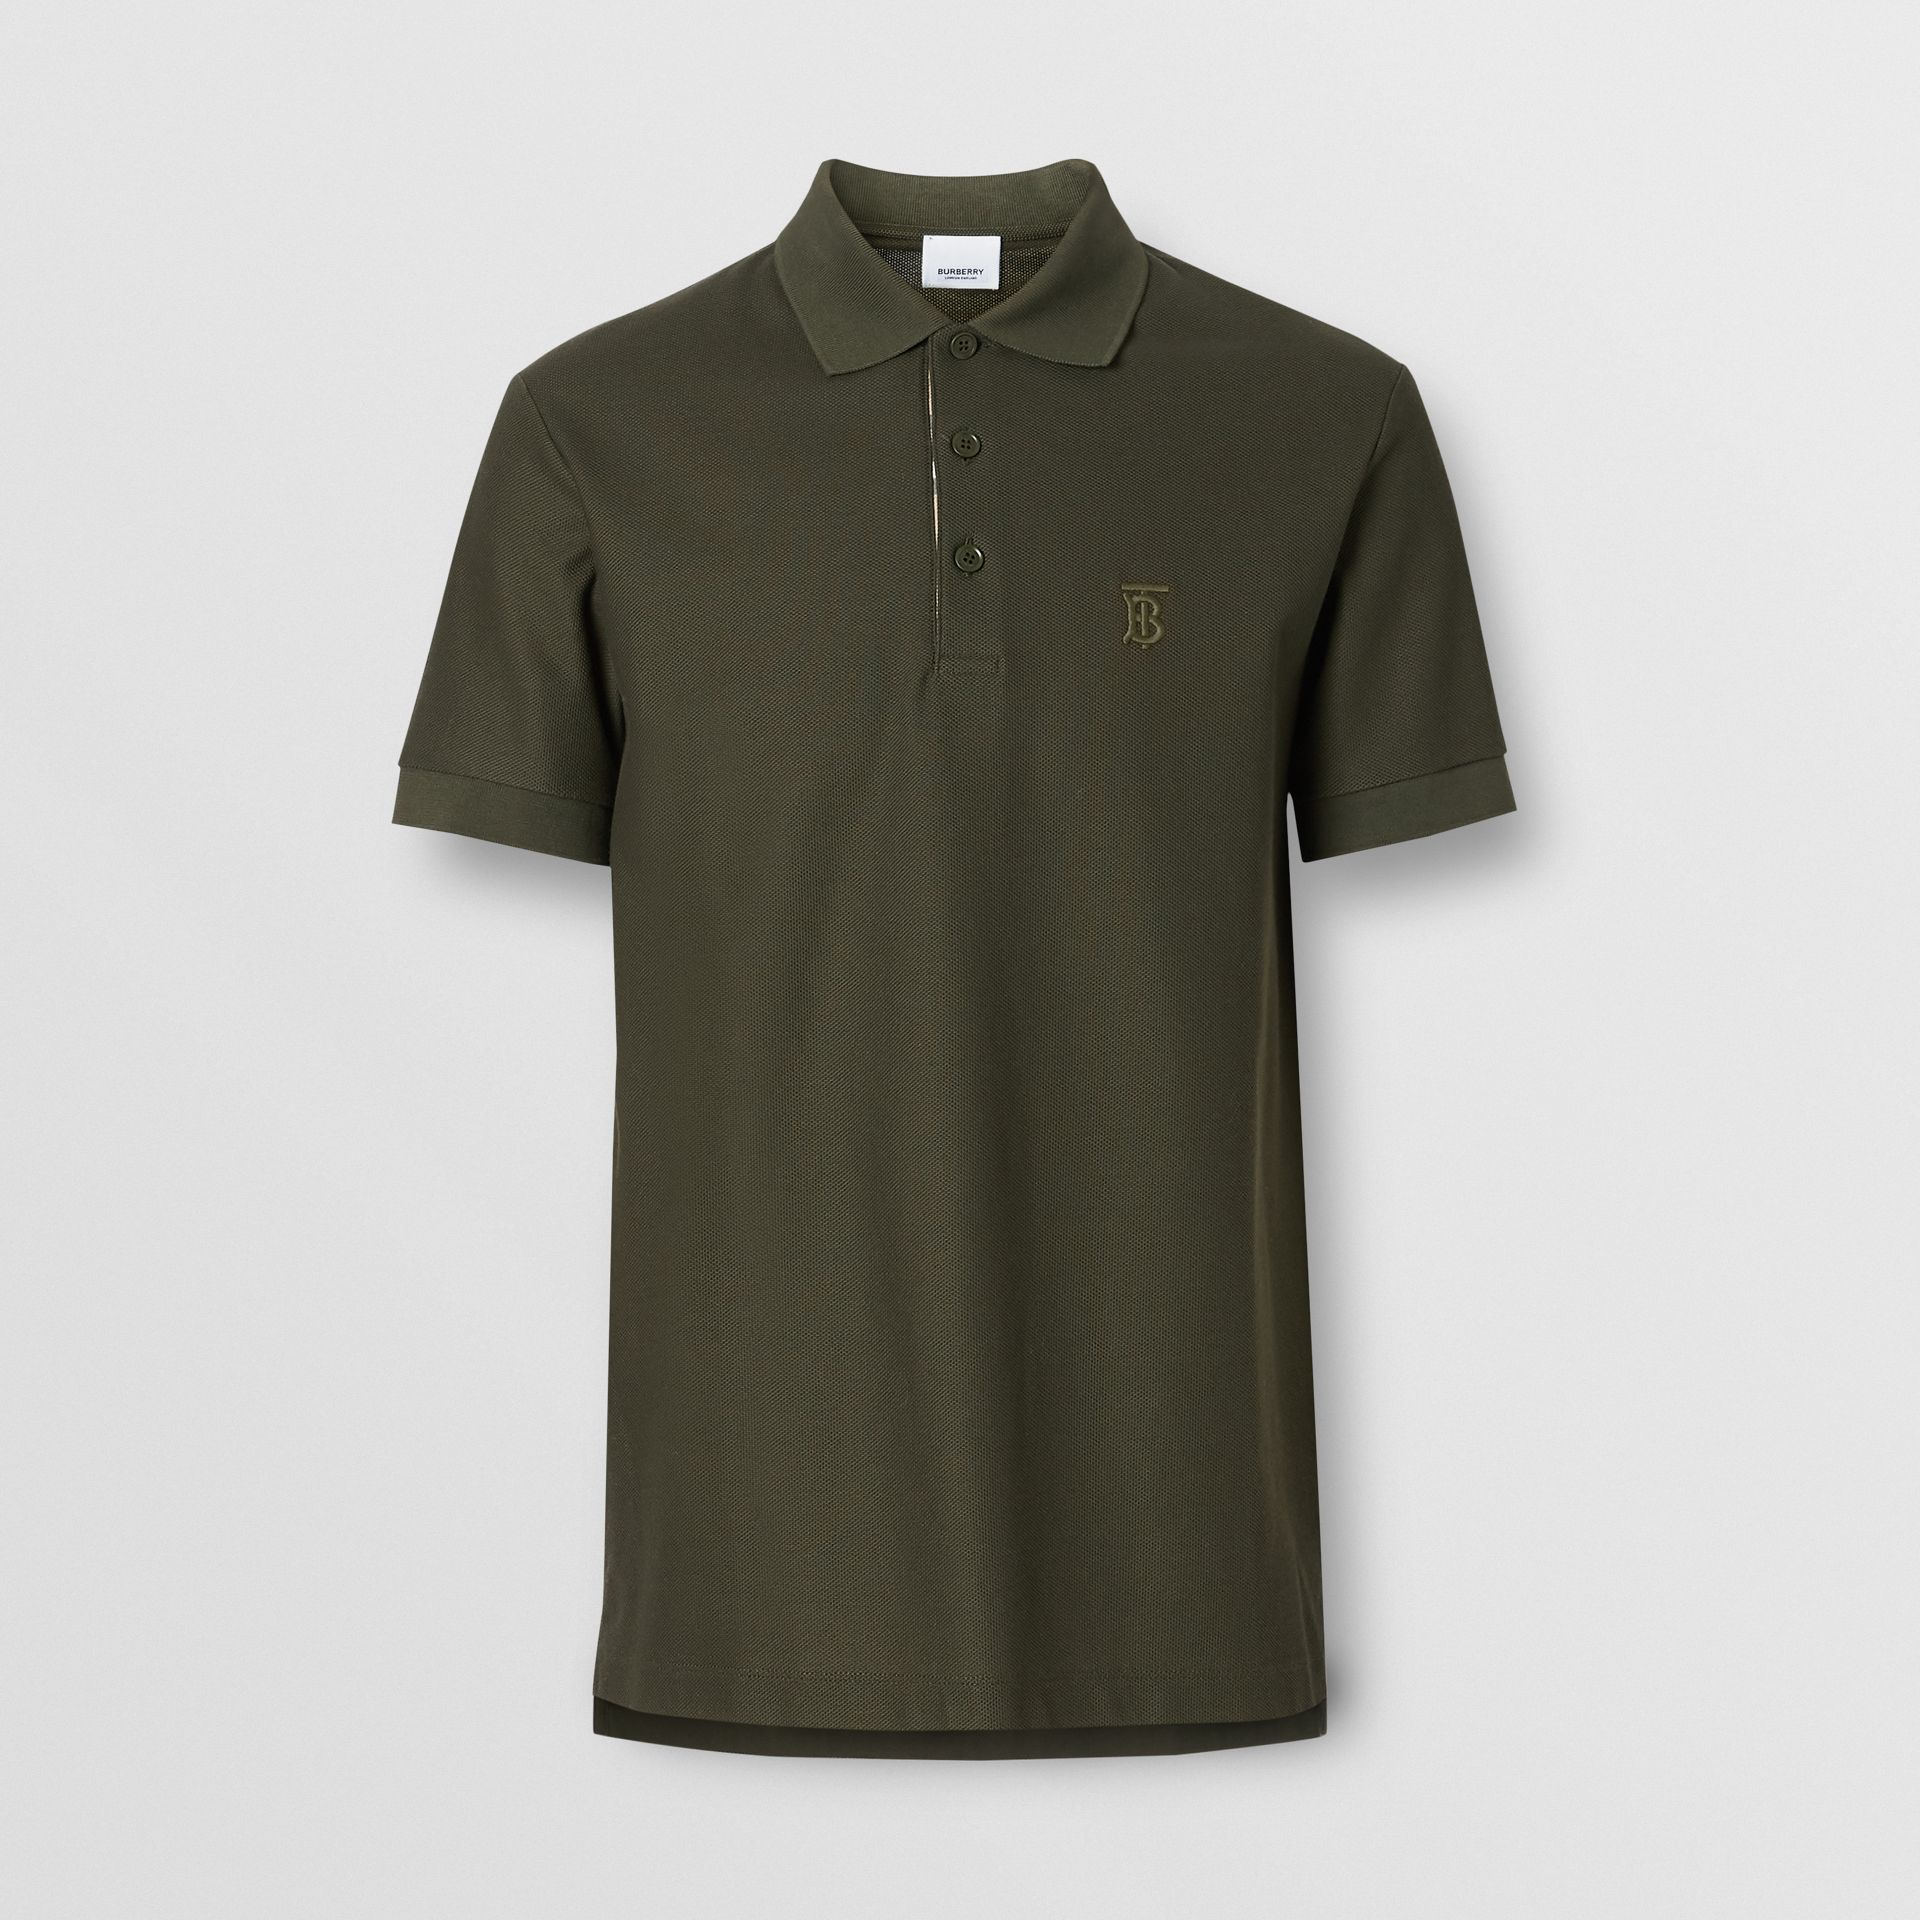 Monogram Motif Cotton Piqué Polo Shirt in Seaweed - Men | Burberry - gallery image 3